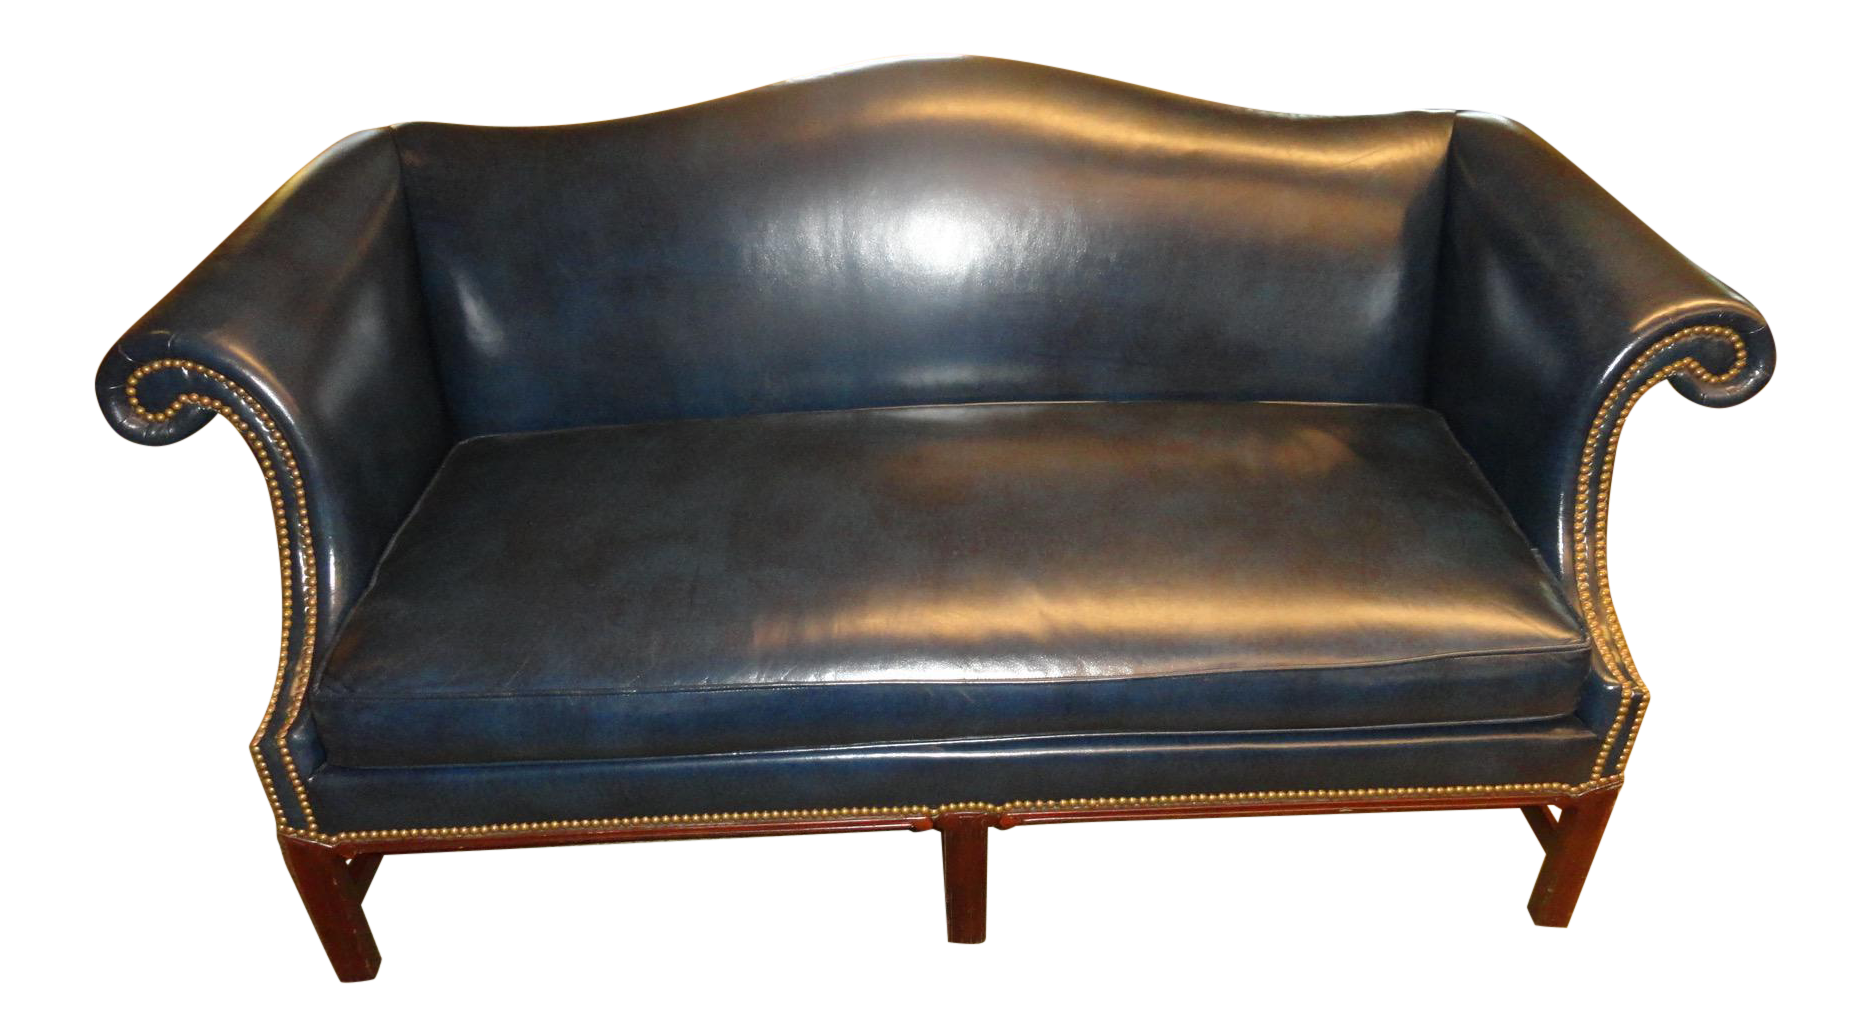 Hickory Chair Leather Couch Steel Headshot Co Settee In 2018 Cat And The Fiddle Chairish